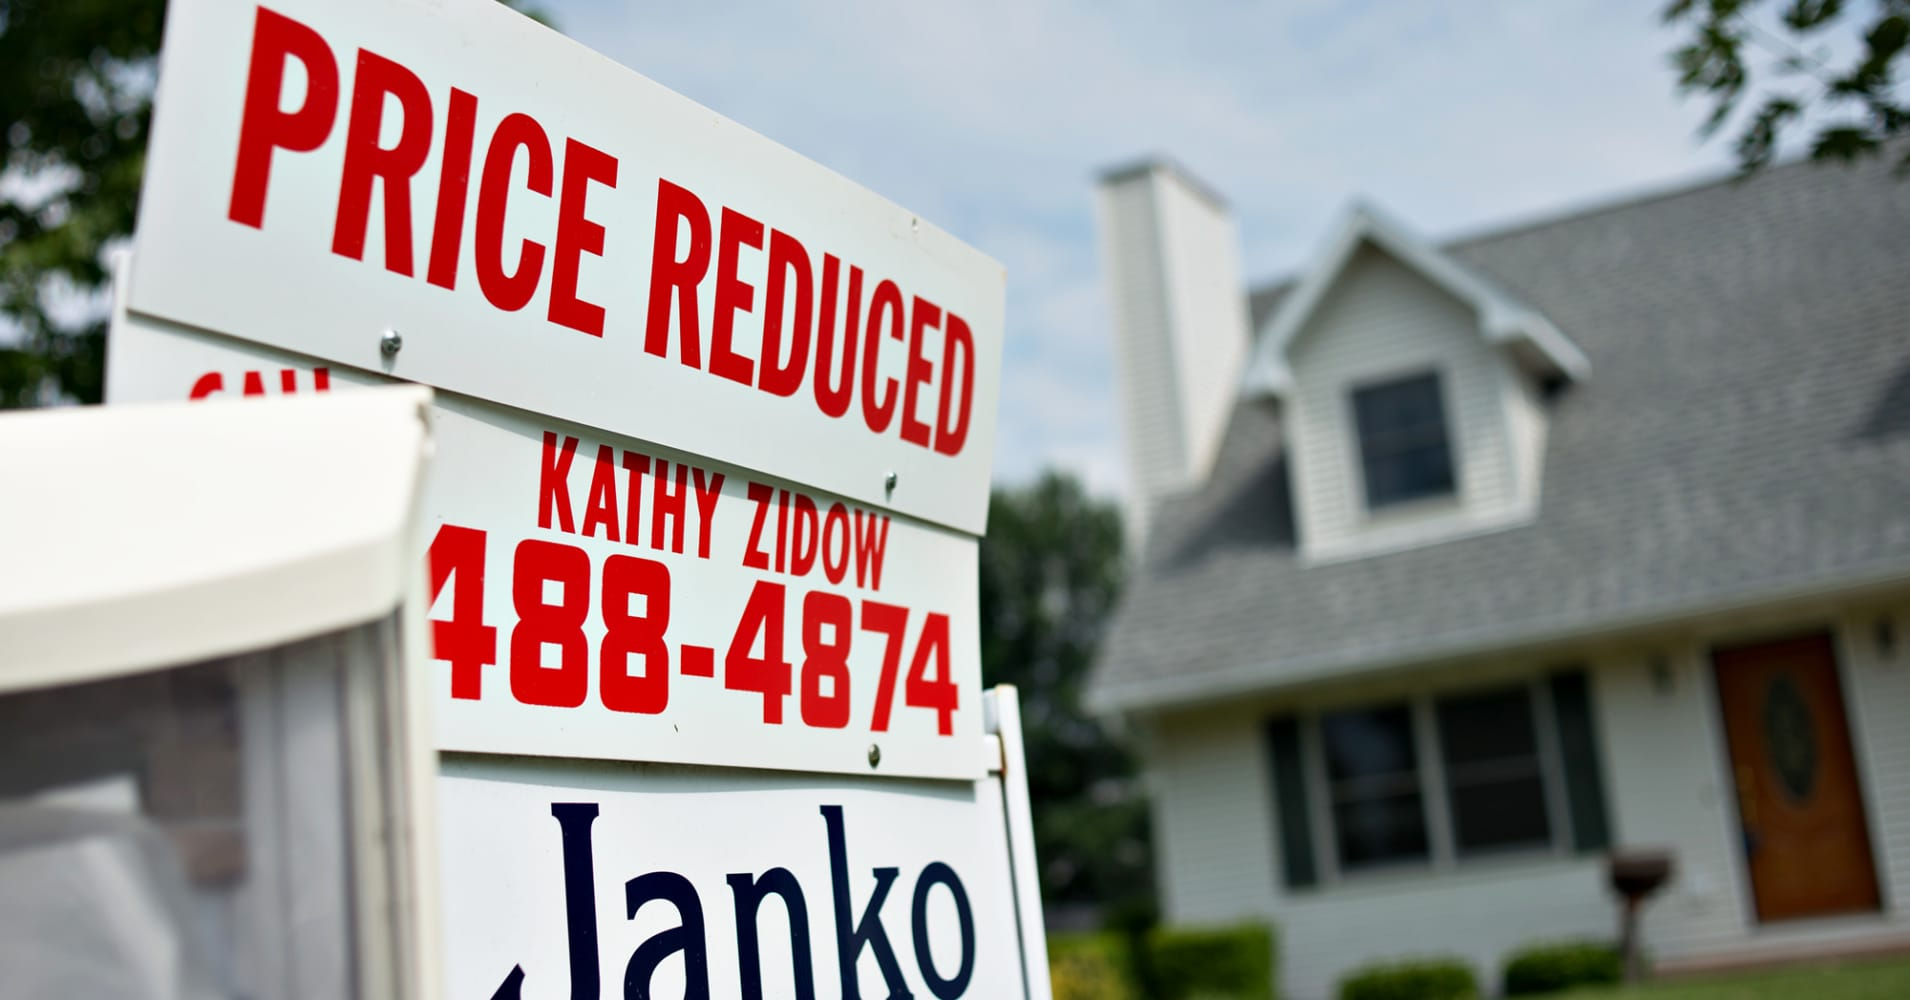 Housing Tipping Back To A Buyer S Market As Sellers Cut Prices